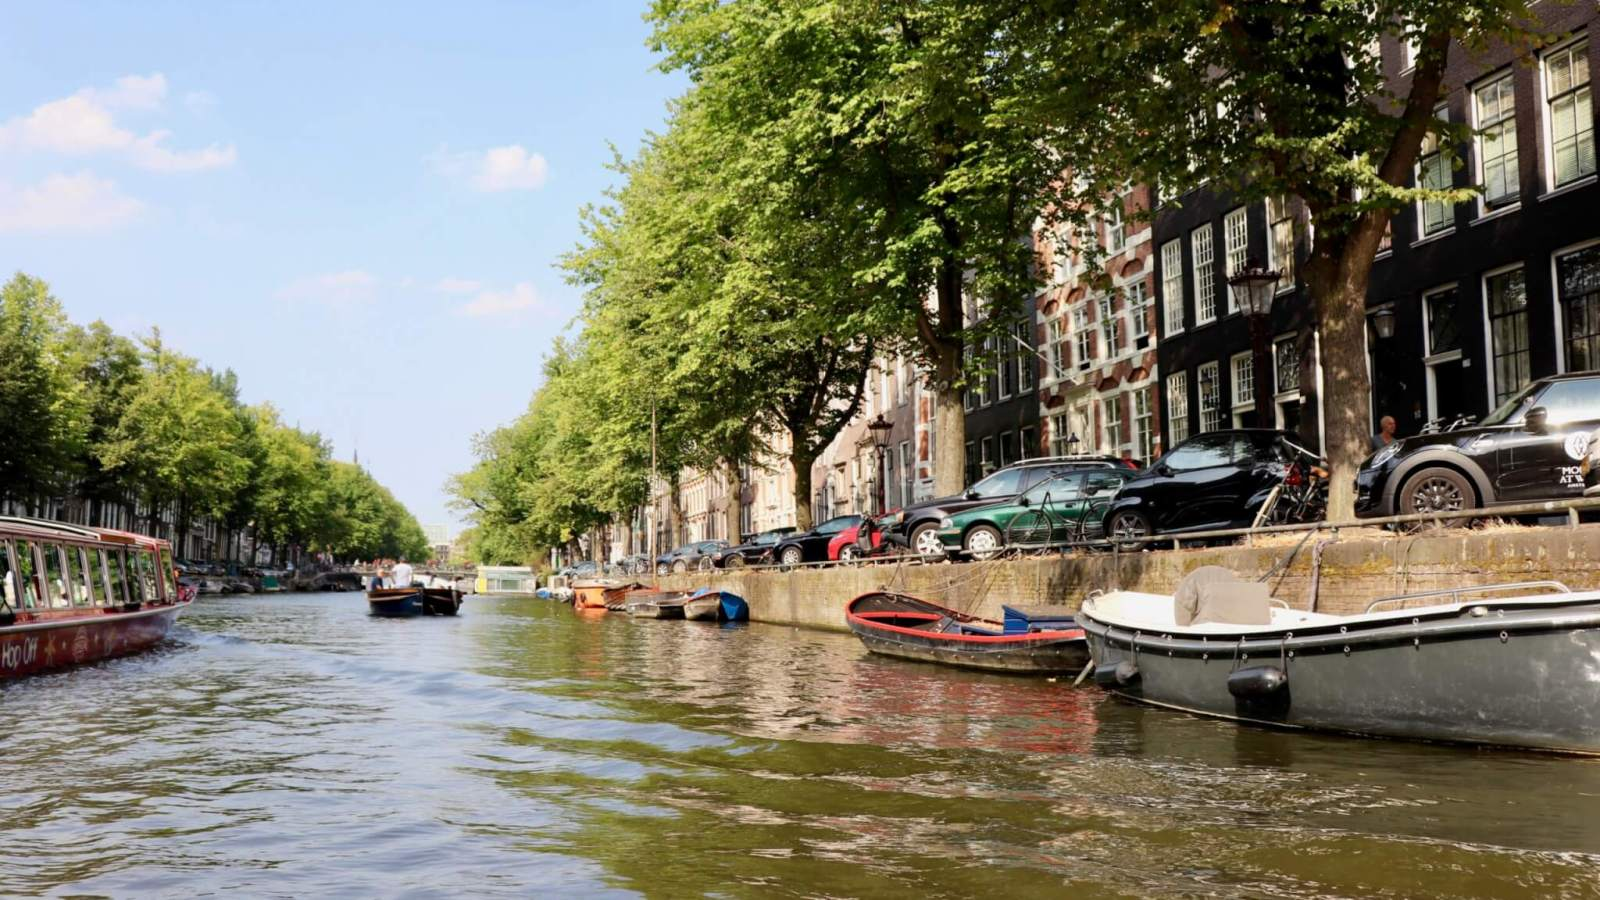 Row houses shaded by leafy trees along the canals in in Amsterdam